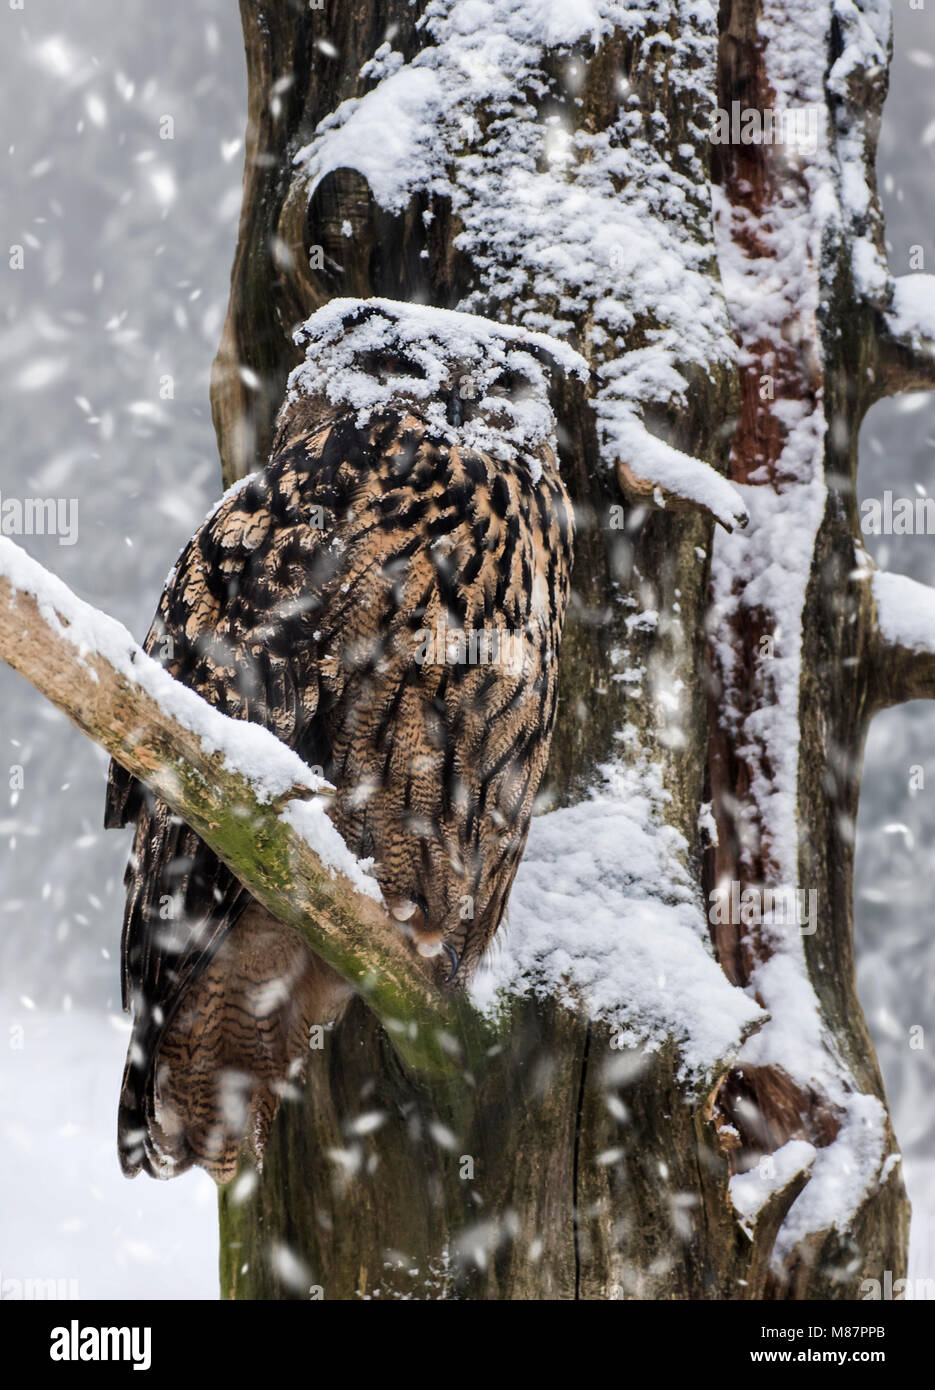 Eurasian eagle-owl / European eagle owl (Bubo bubo) with face covered in snow perched in tree during snow shower - Stock Image